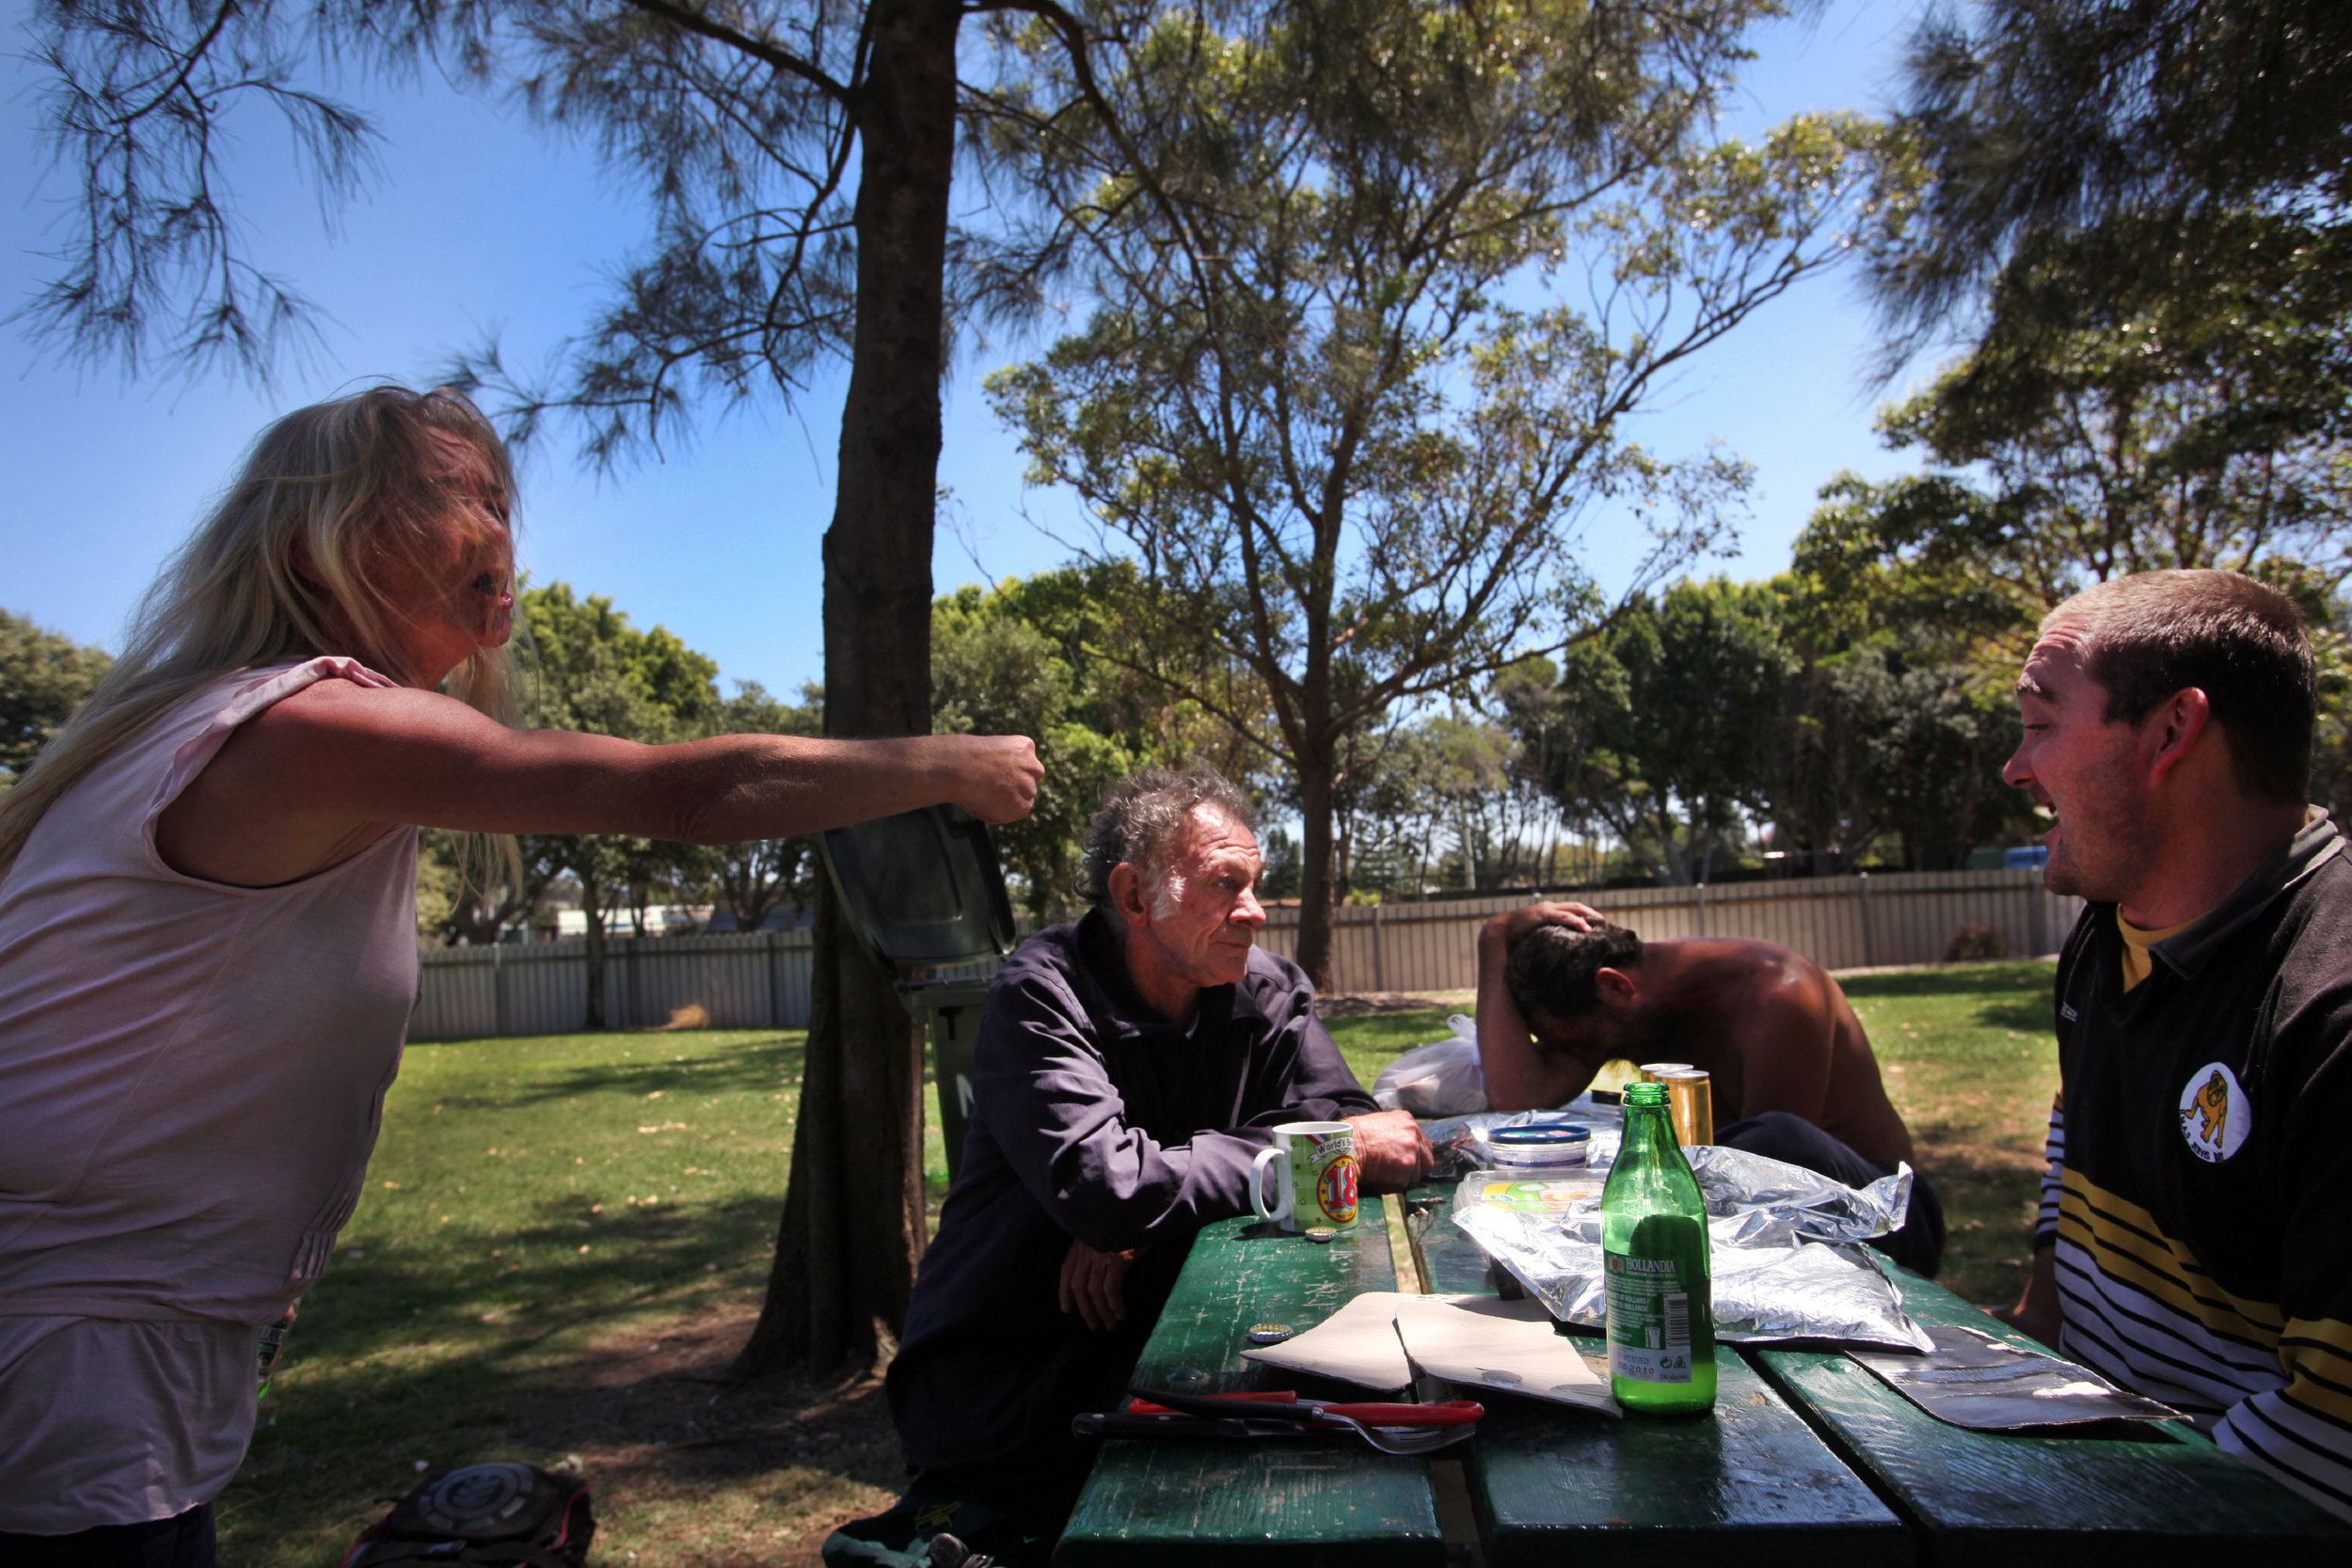 Denise delivers a volley of abuse at one of the other drinkers during a session in a local council park.